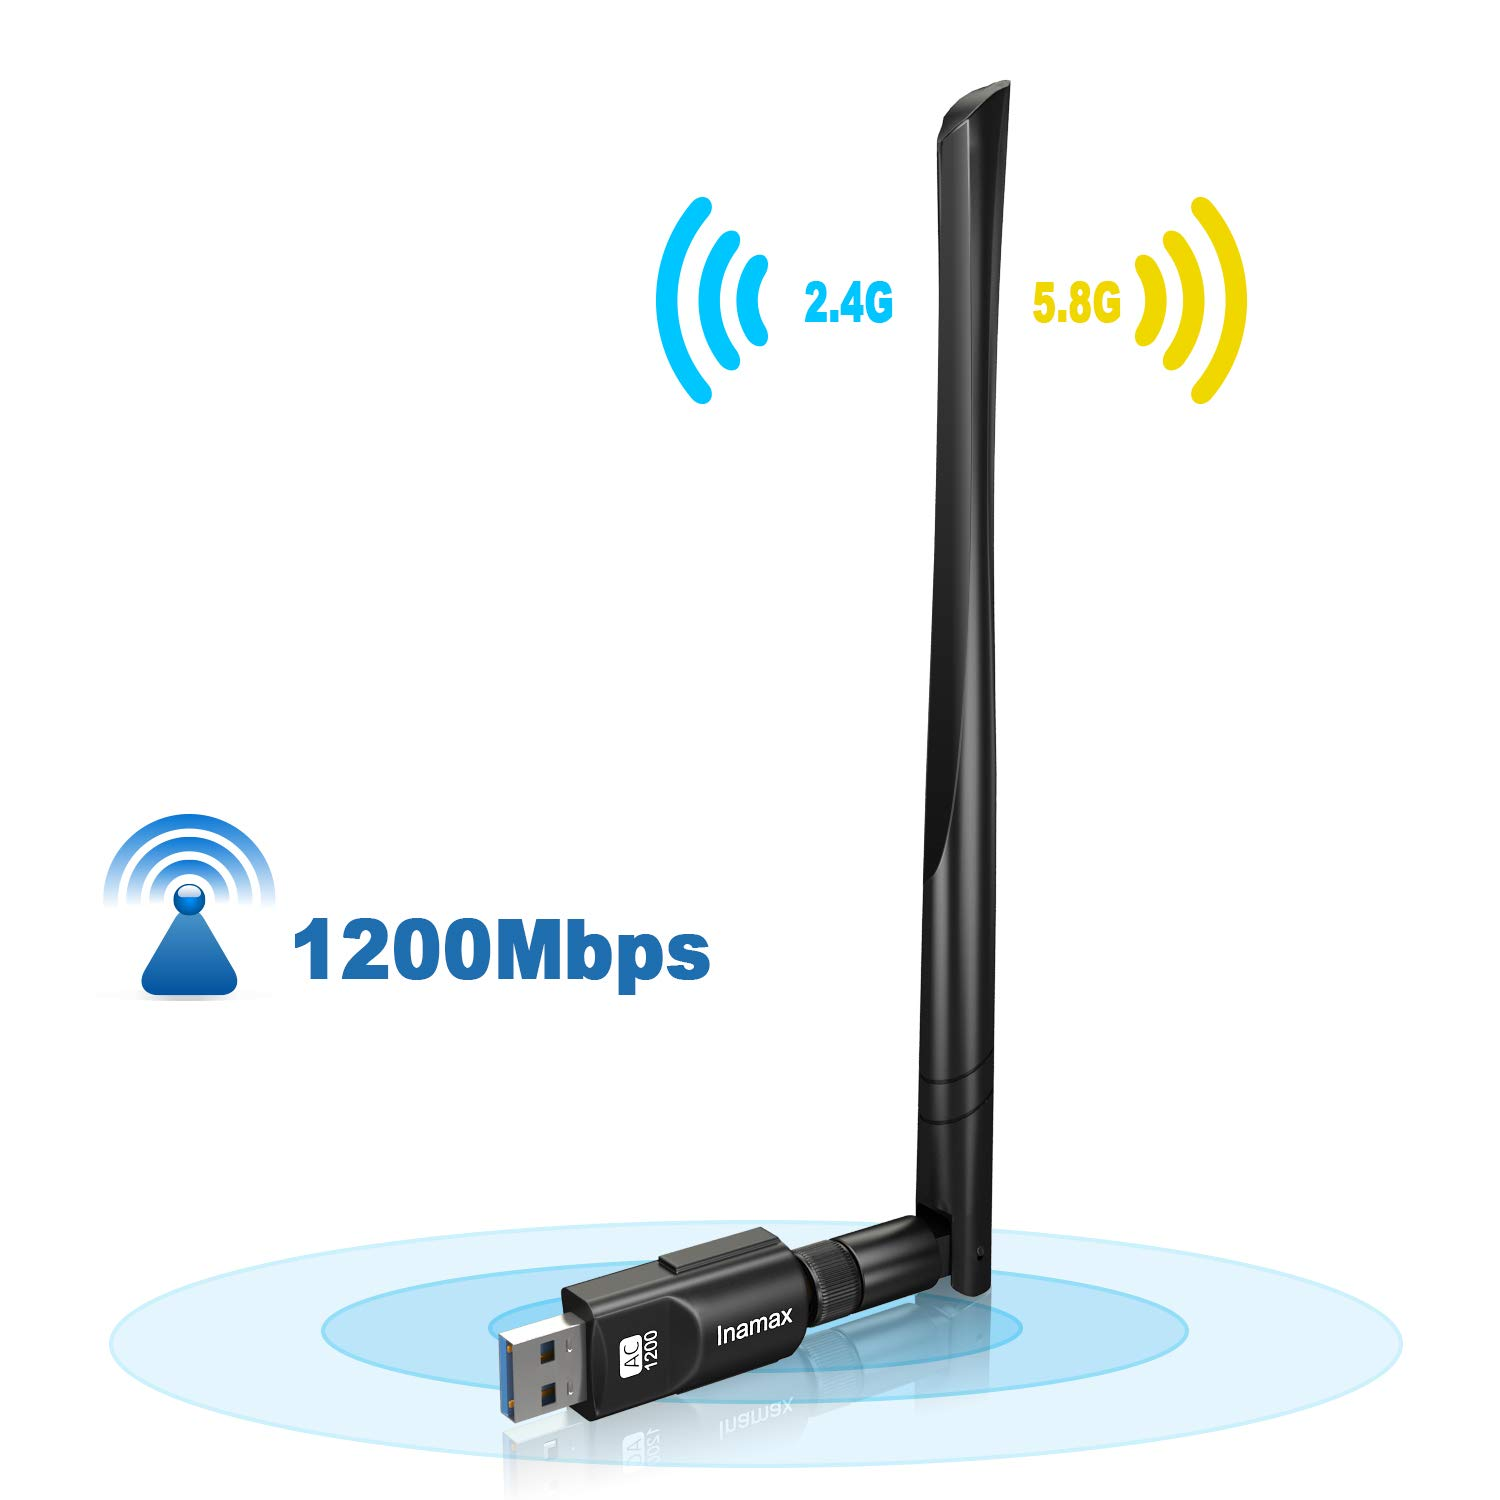 Inamax USB WiFi Adapter 1200Mbps, USB 3 0 Wireless Network WiFi Dongle with  5dBi Antenna for PC/Desktop/Laptop/Mac, Dual Band 2 4G/5G 802 11ac,Support